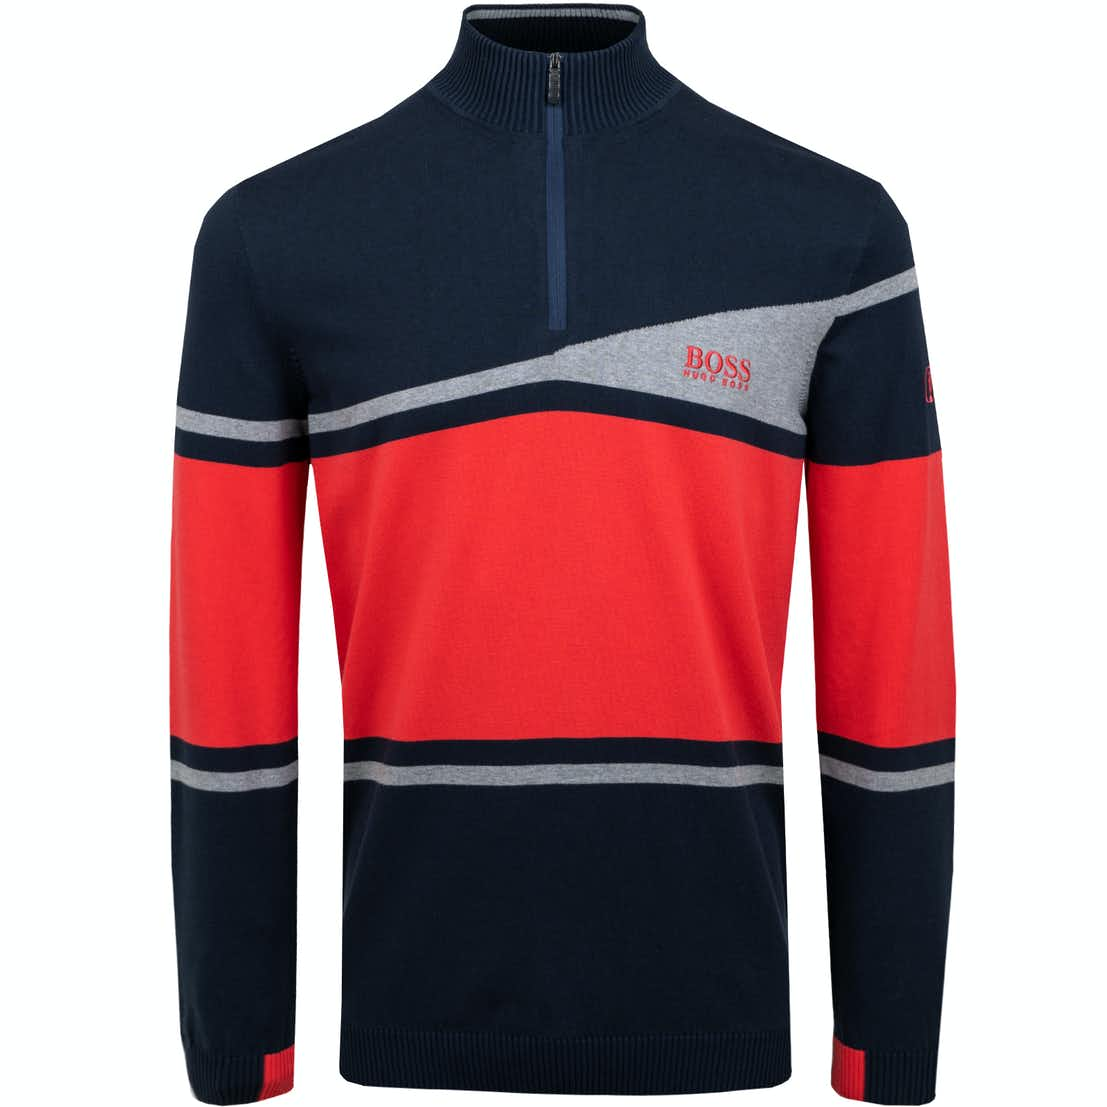 The Open BOSS 1/4-Zip Sweater - Blue and Red